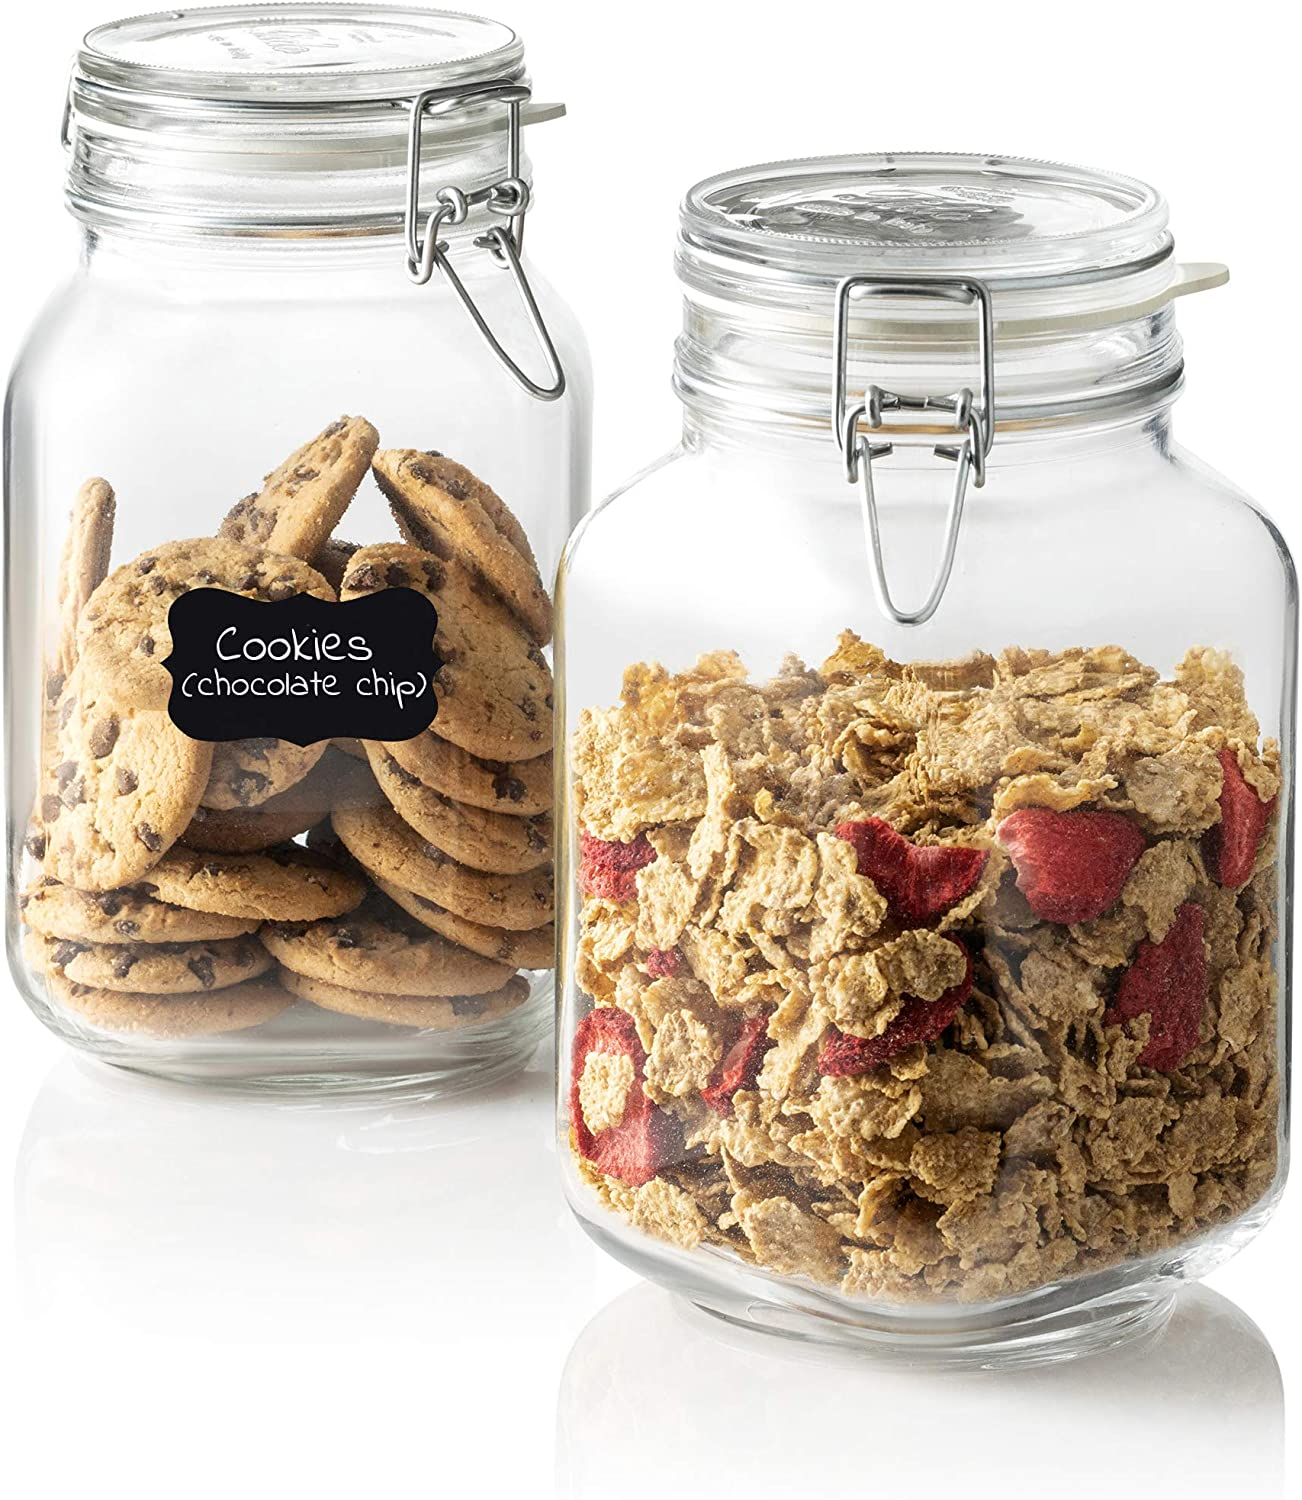 Bormioli Rocco Glass Fido Jars - 67 ¾ Ounce (2 Liter) with hermetically Sealed hinged Airtight lid for Fermenting, Preserving, Bulk - dry Food Storage, With Paksh Novelty Chalkboard Label Set (2 Pack)